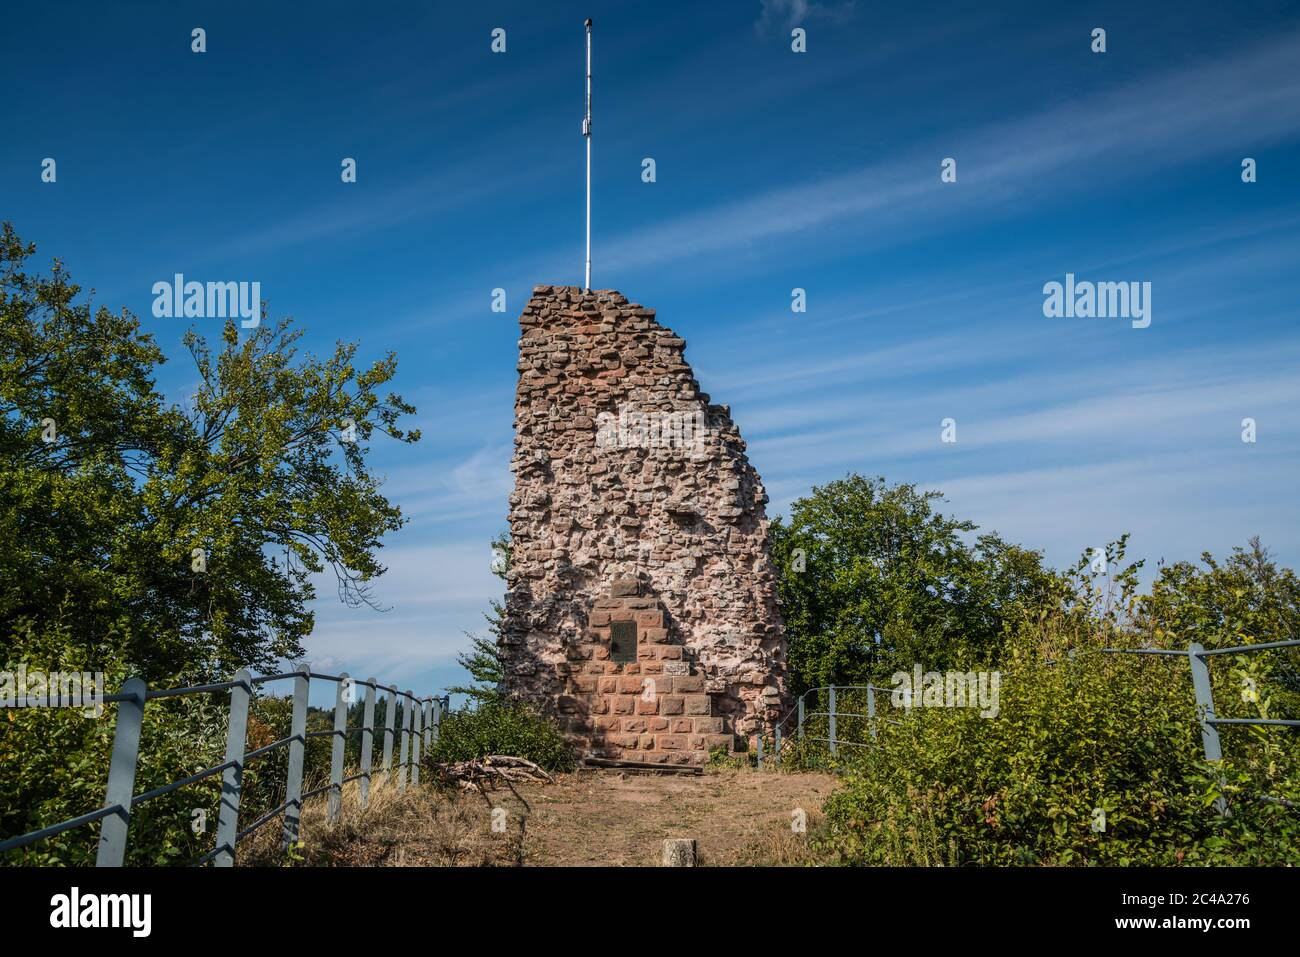 The ruins of Guttenberg's berg fried are located in Palatinate Forest. The hilltop castle has been first mentioned in 12th century, destroyed at1525. Stock Photo